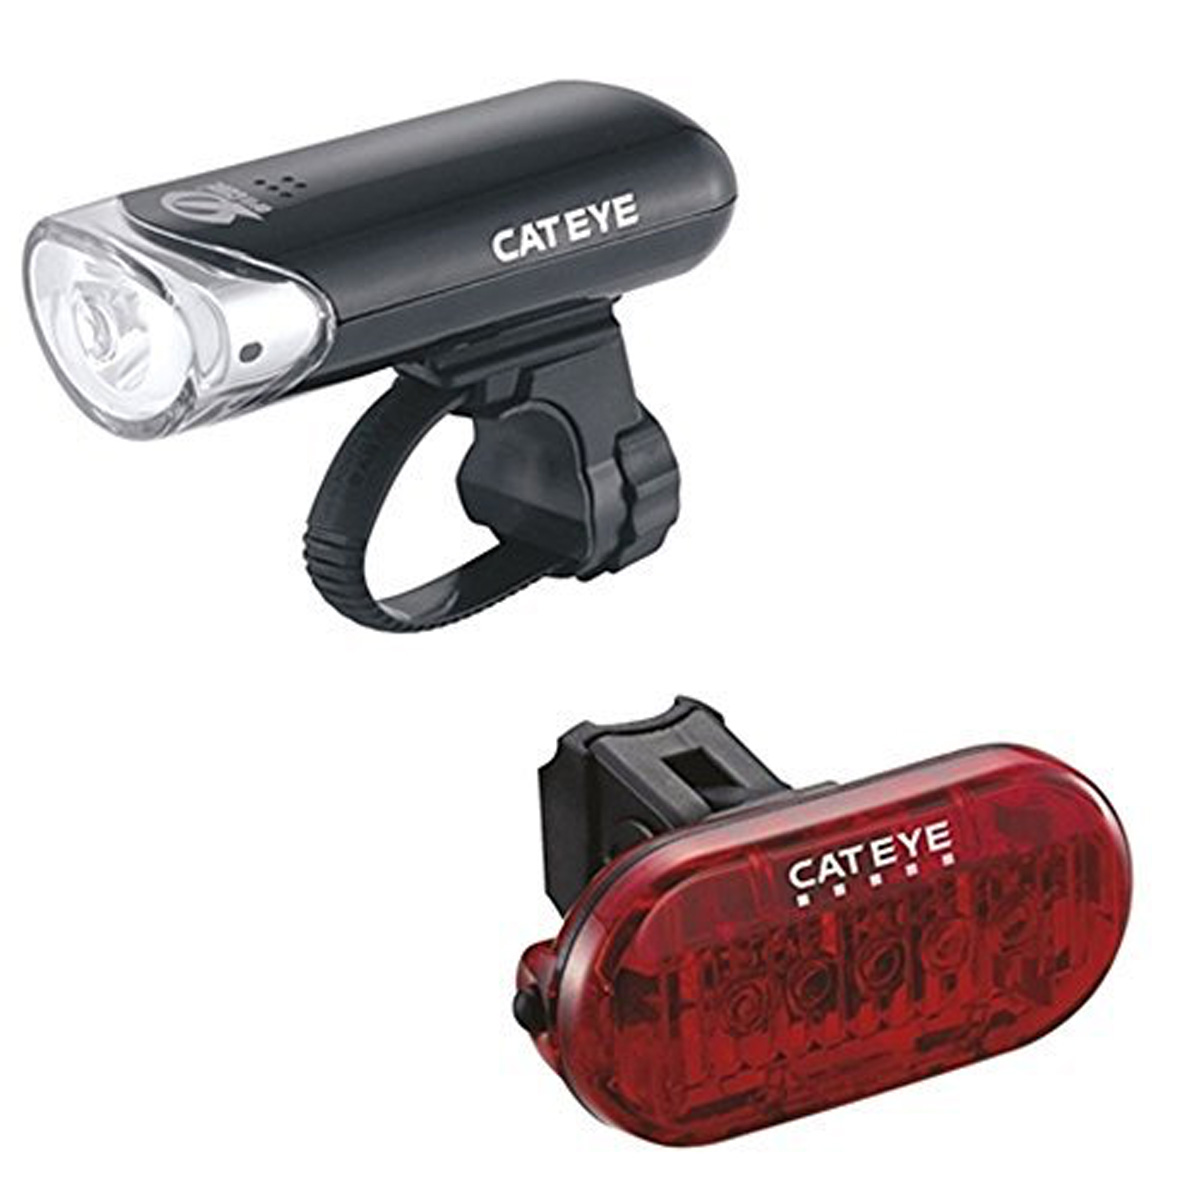 CatEye HL-EL135N Bicycle Headlight /OMNI 5 TL-LD155 RED Bicycle Taillight Set  - 5358500